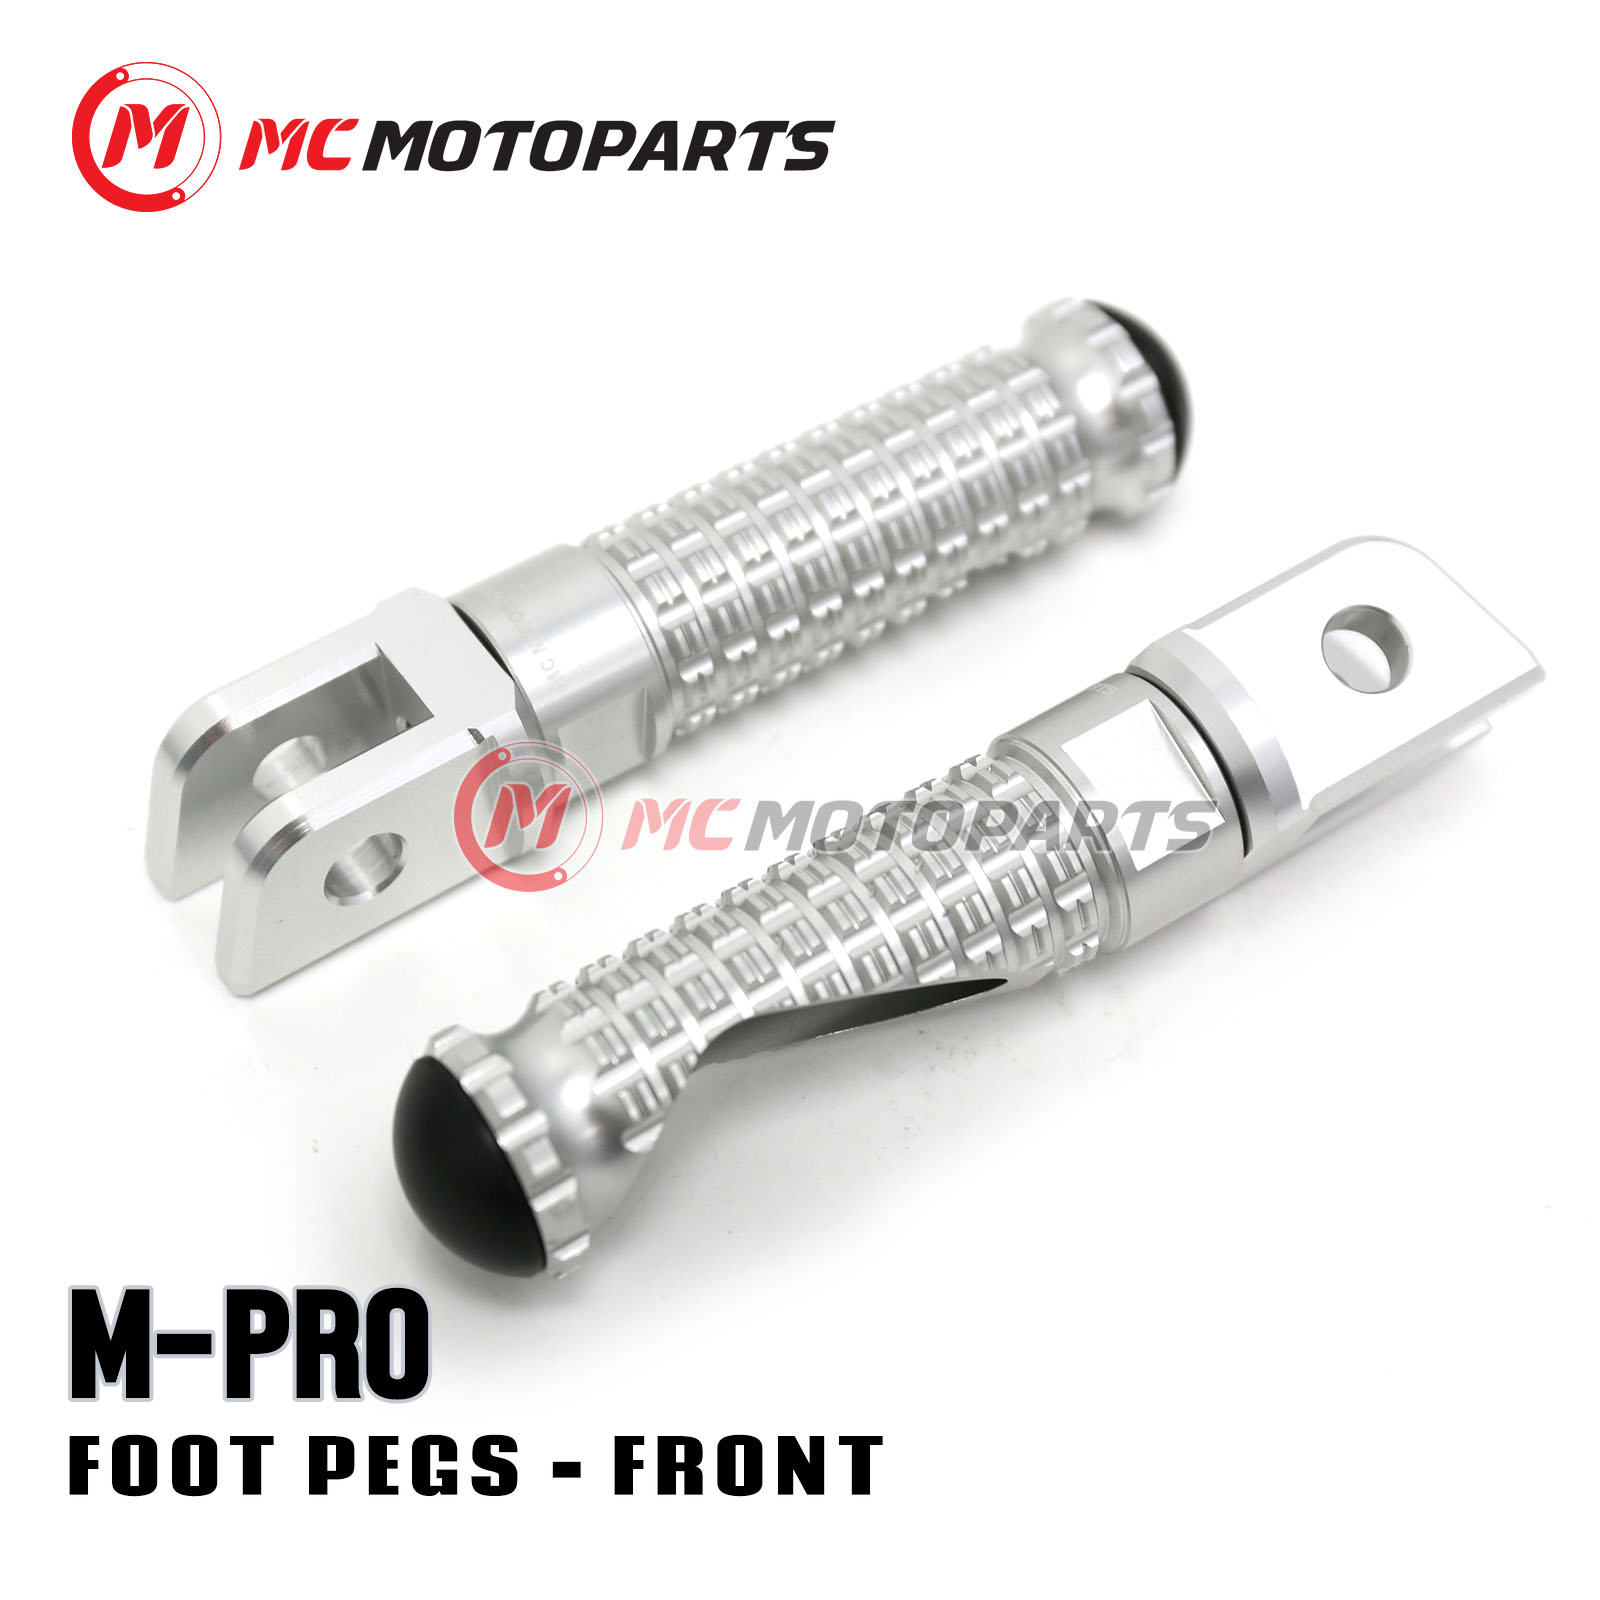 Gold Billet Front Rider Foot Pegs For Triumph Tiger 99 00 01